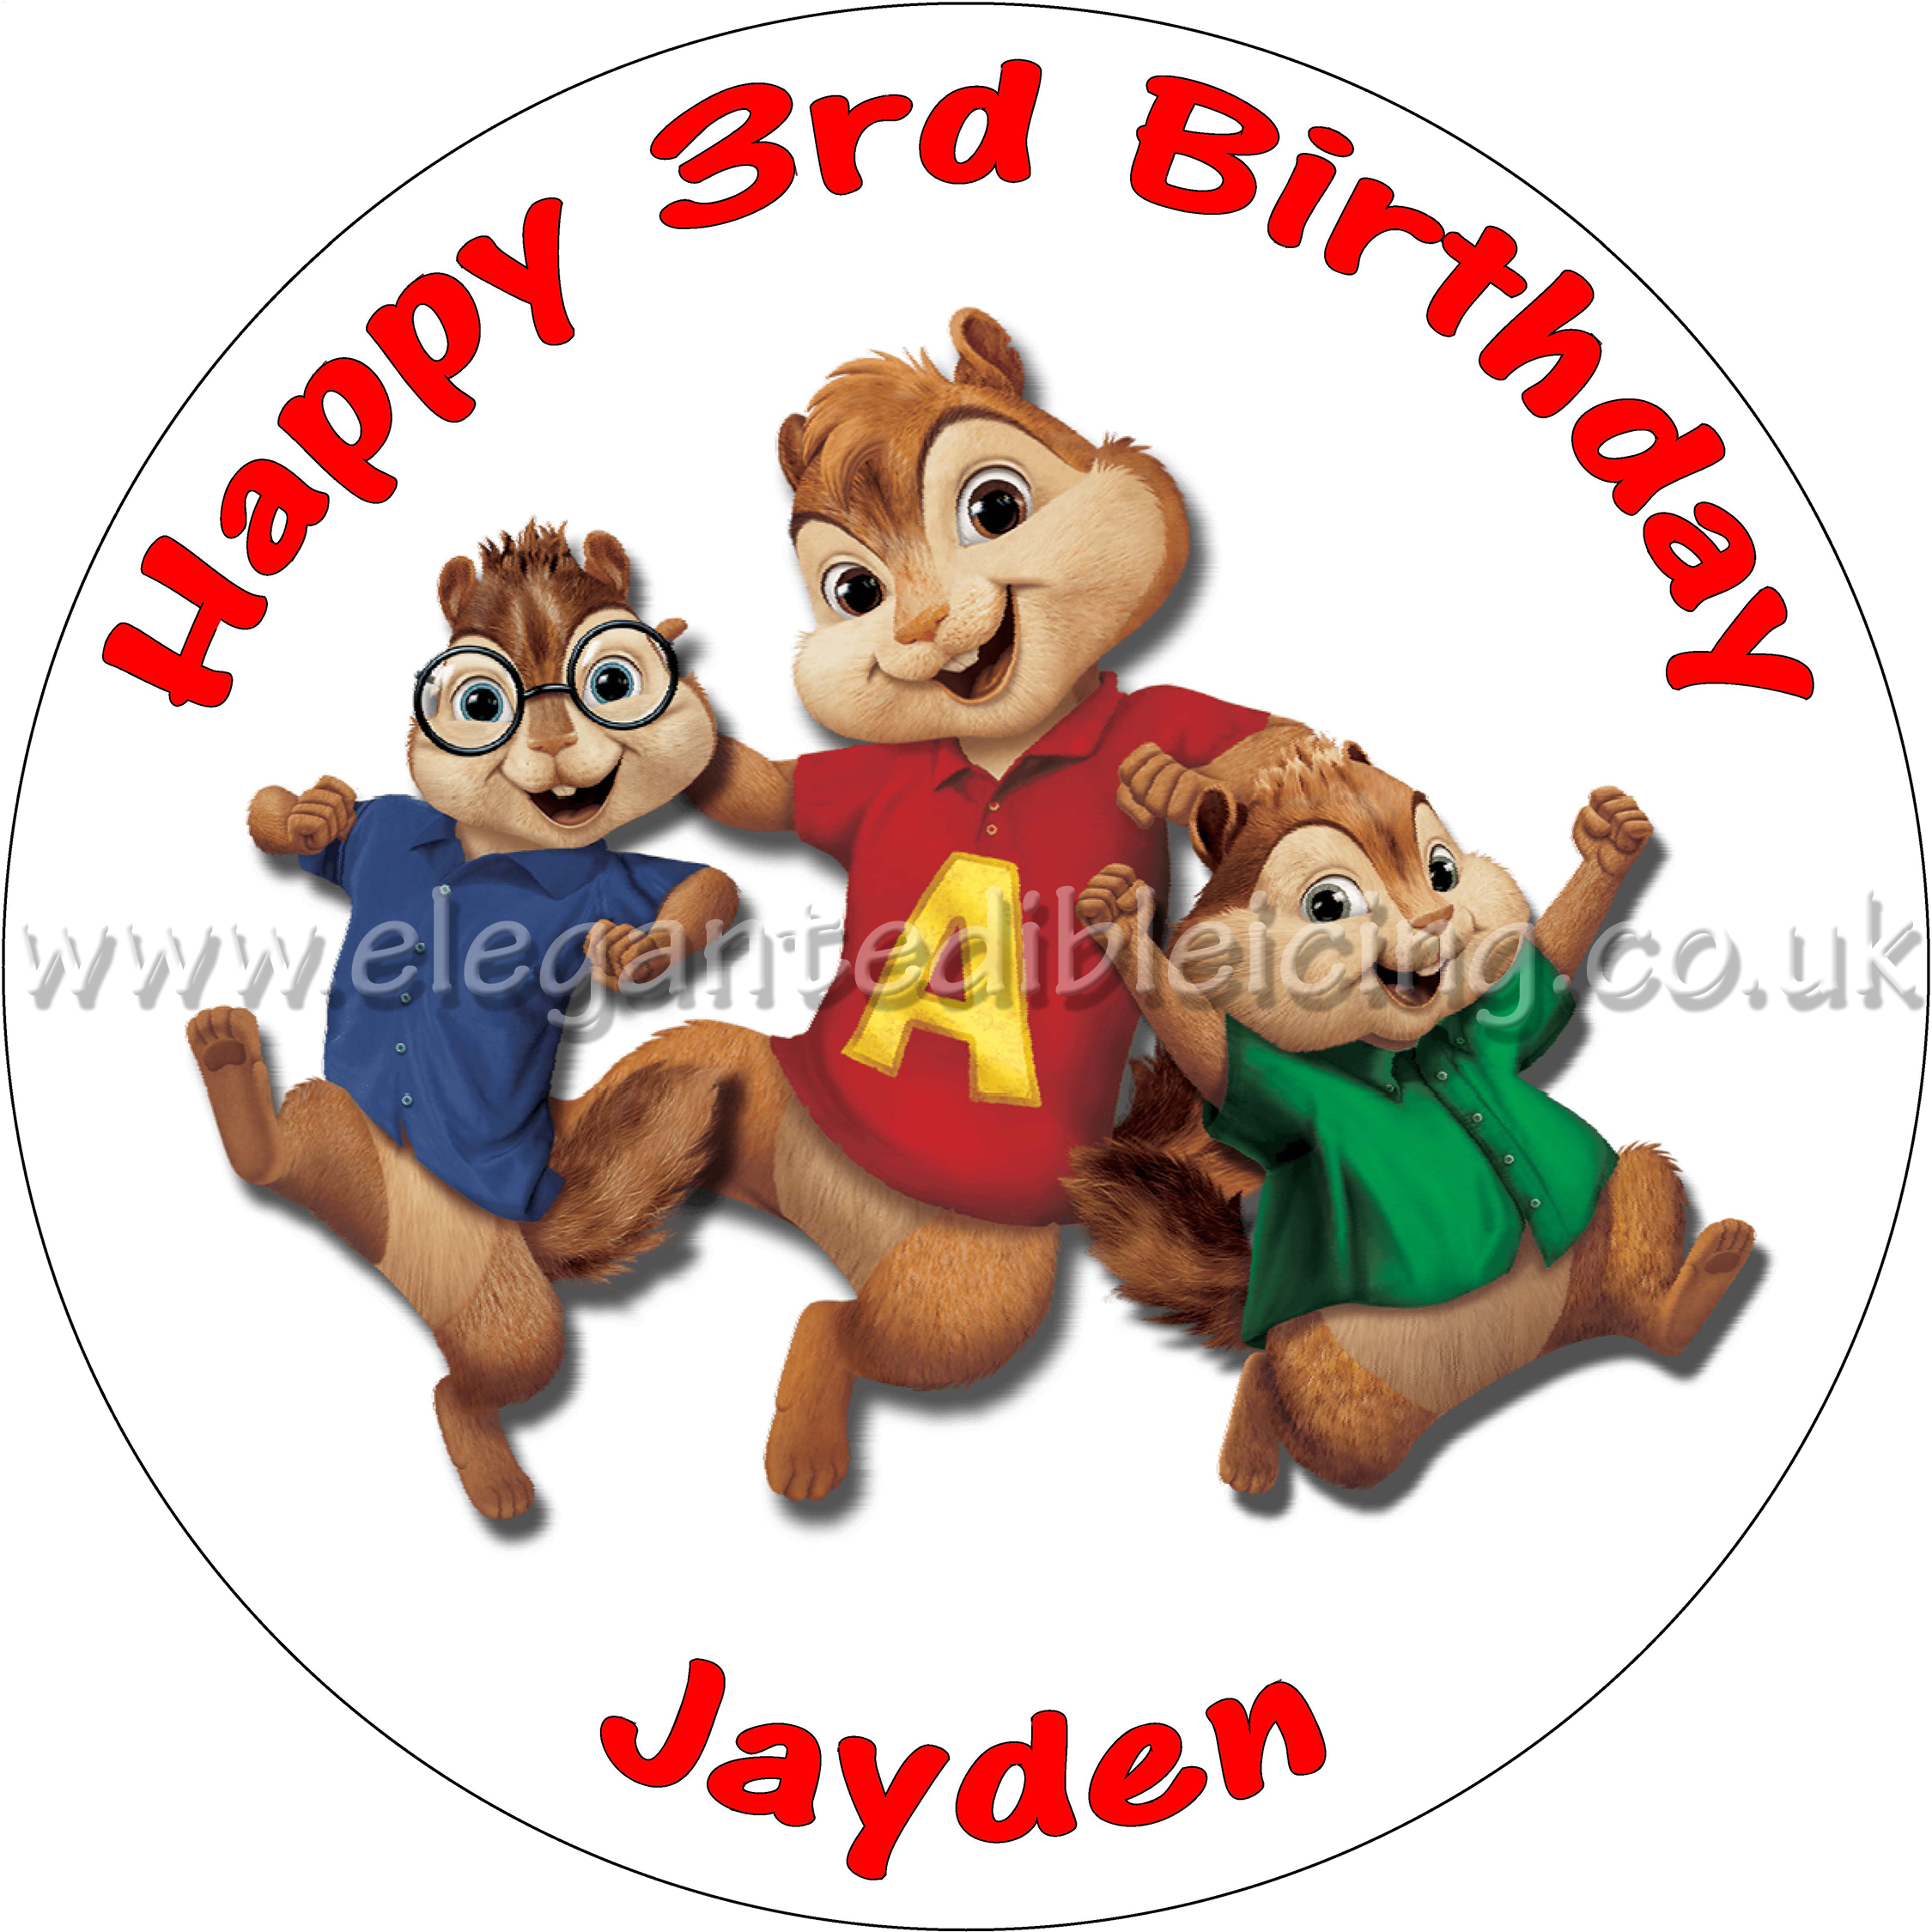 Awe Inspiring Alvin And The Chipmunks Cake Topper Personalised Funny Birthday Cards Online Alyptdamsfinfo